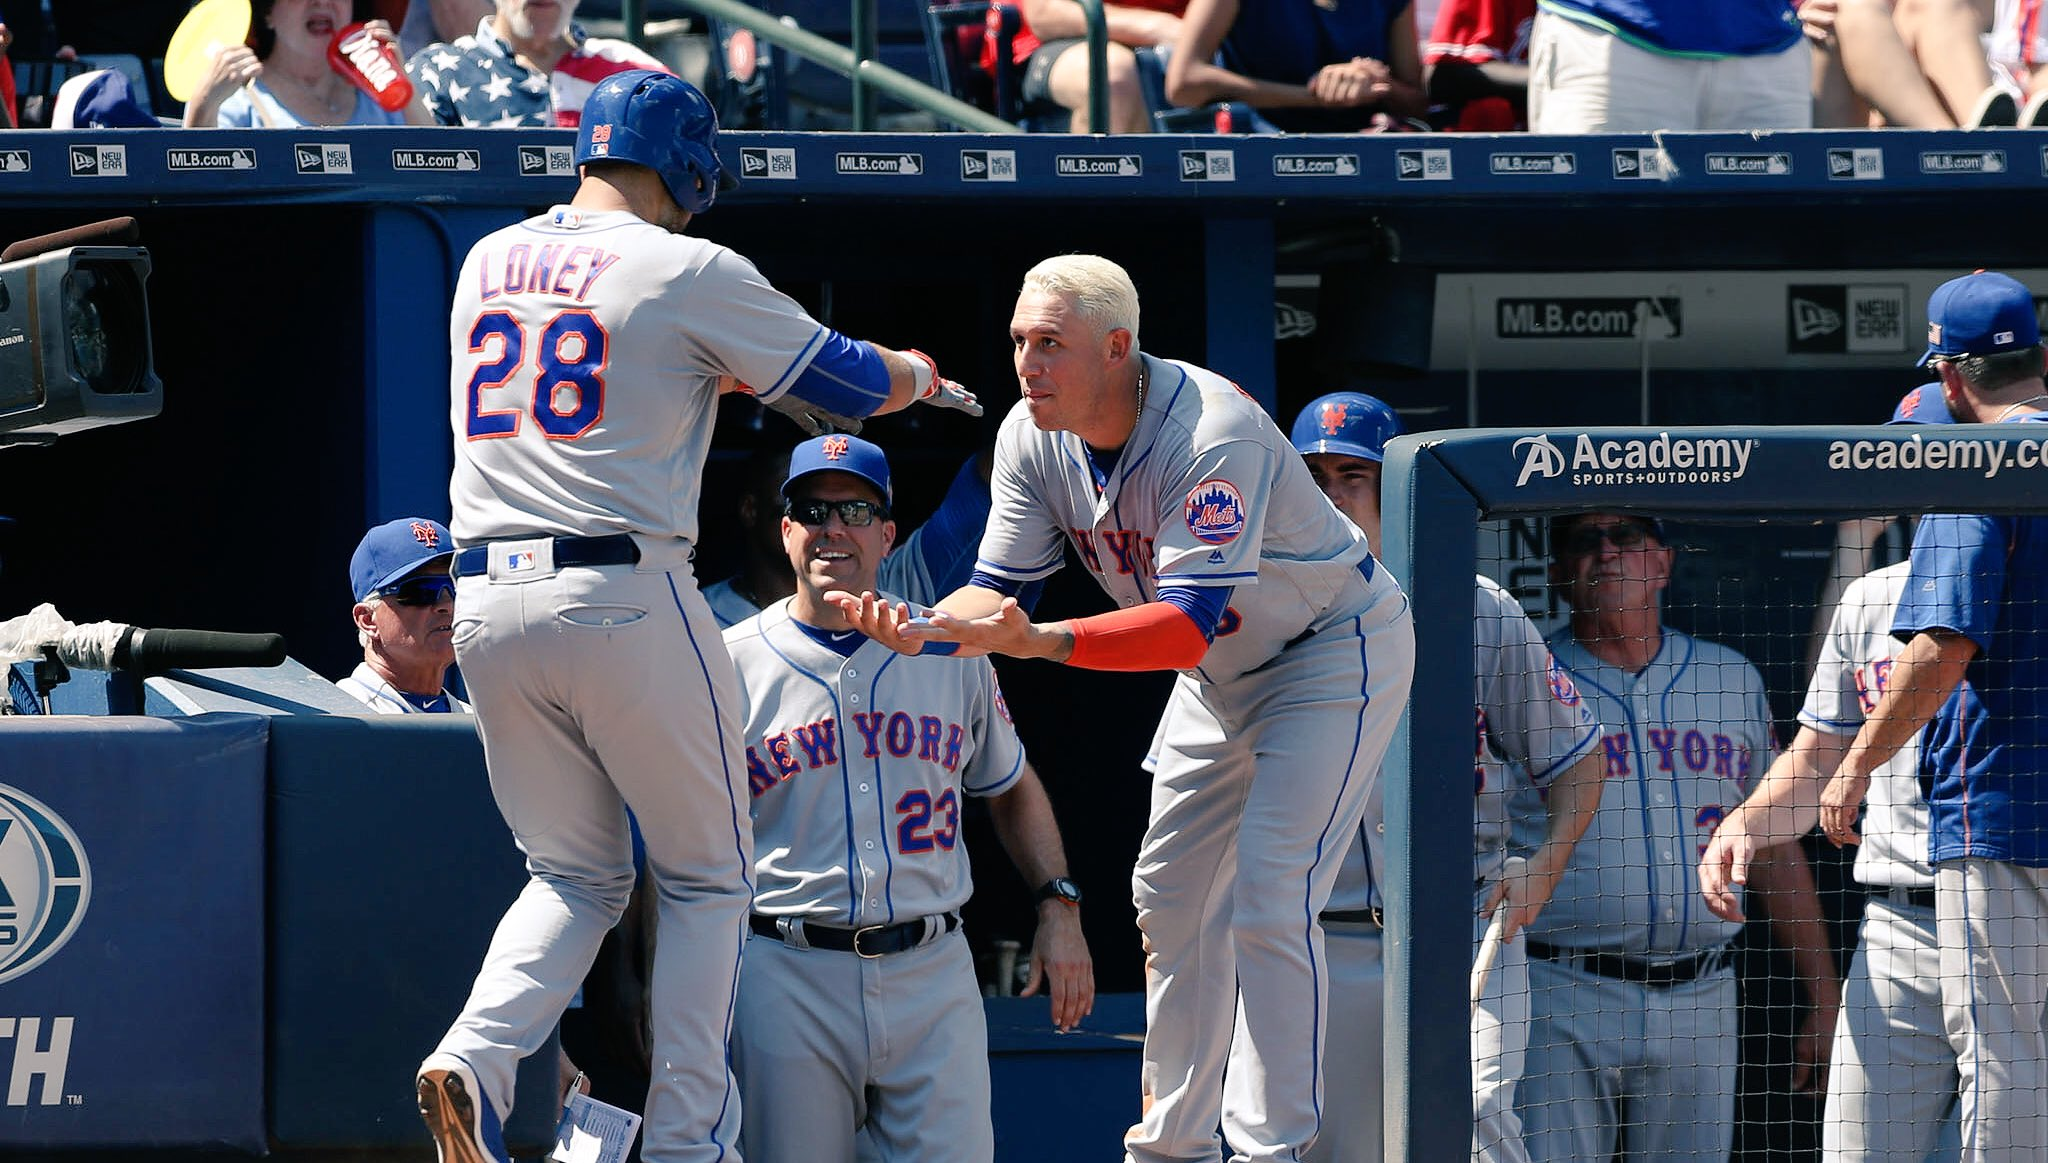 J-Lo's 7th home run of the season is making Sunday even more fun. It's 6-0 #Mets, Mid 4. https://t.co/zQwwTCxh2d